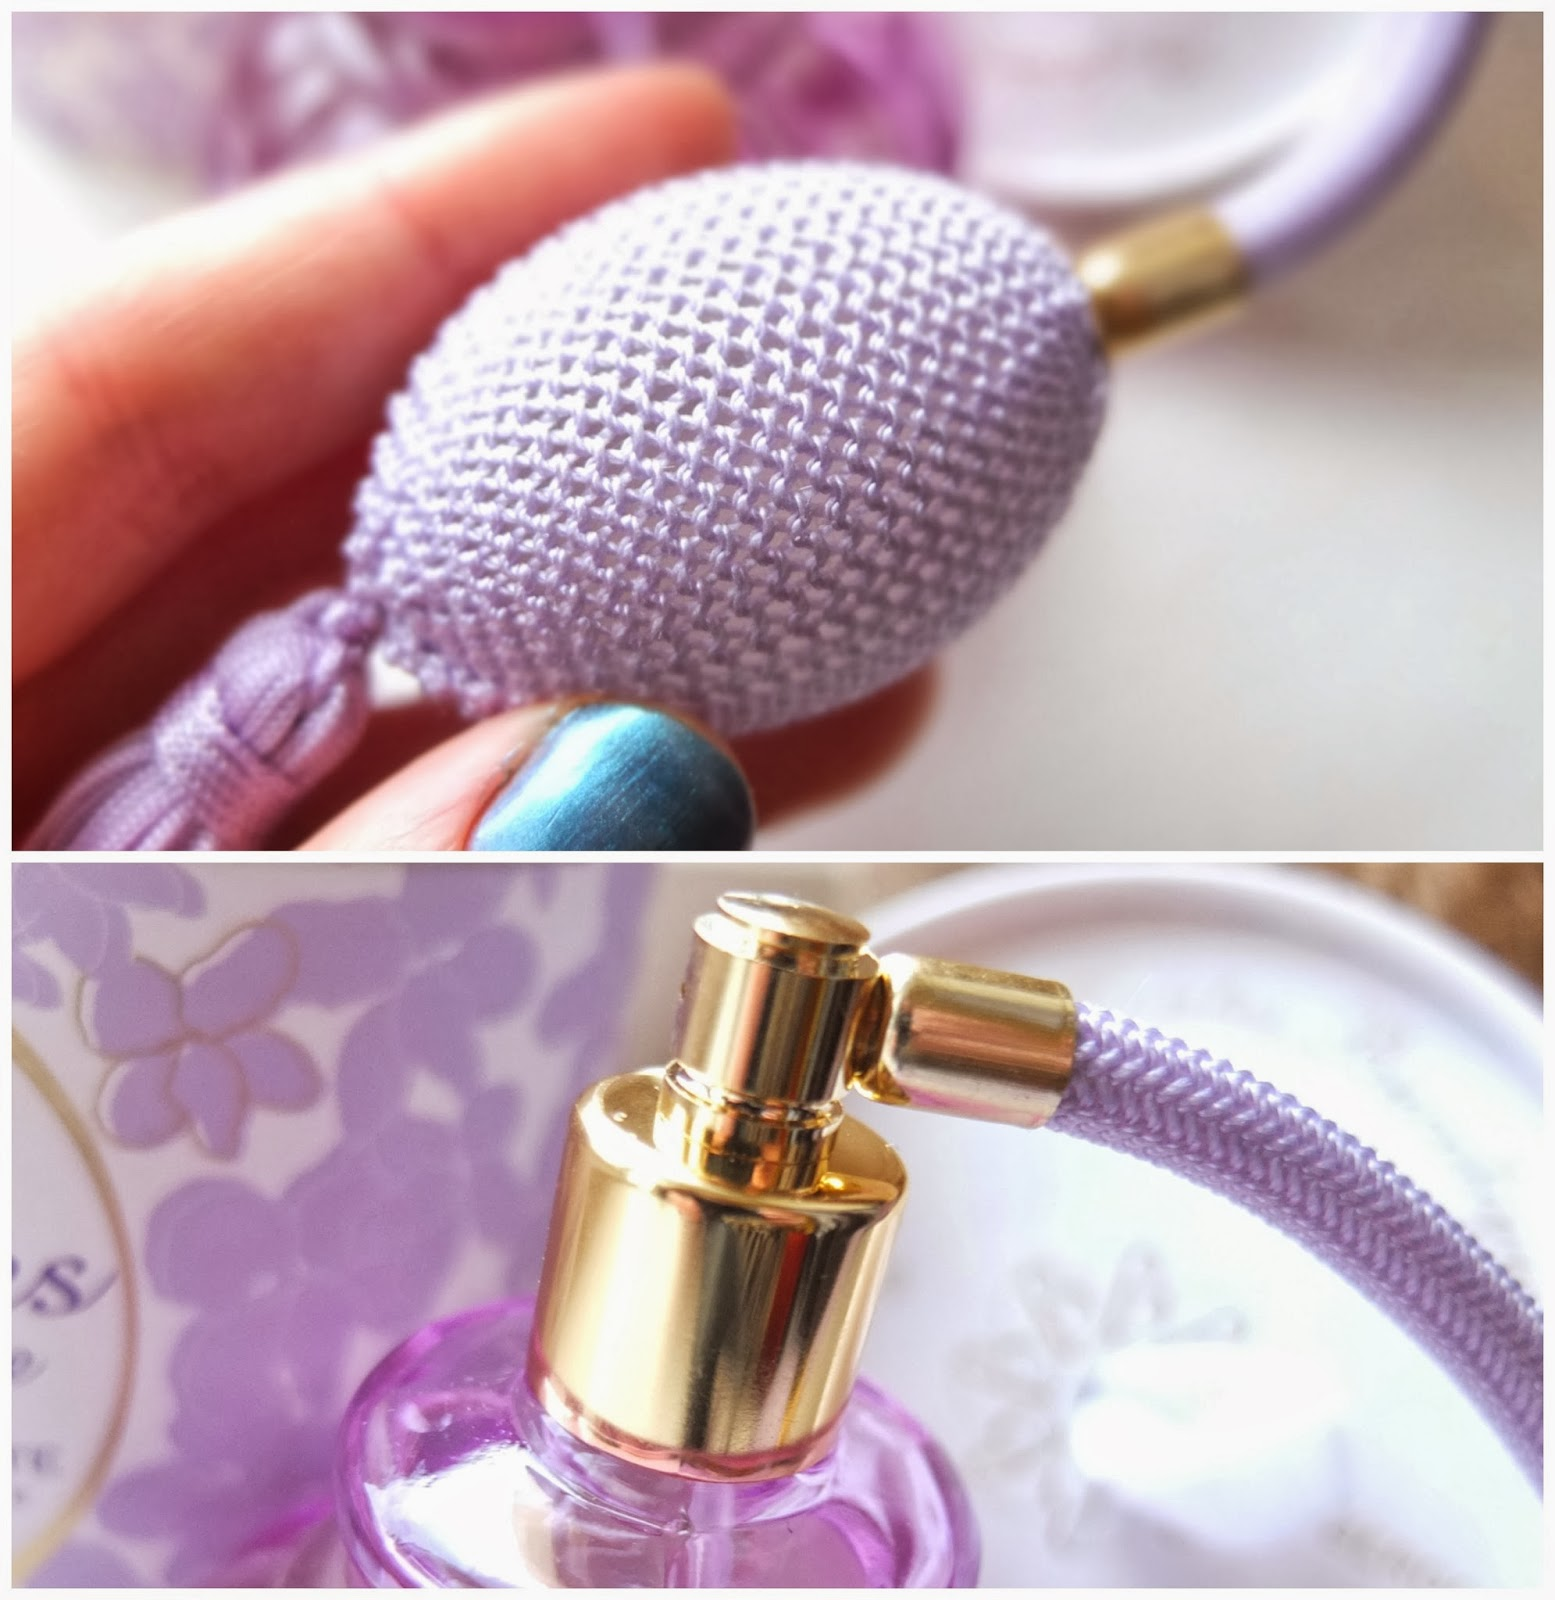 Berdoues Violette de Toulouse, a violet scented perfume from Marks and Spencers on UK beauty blog.